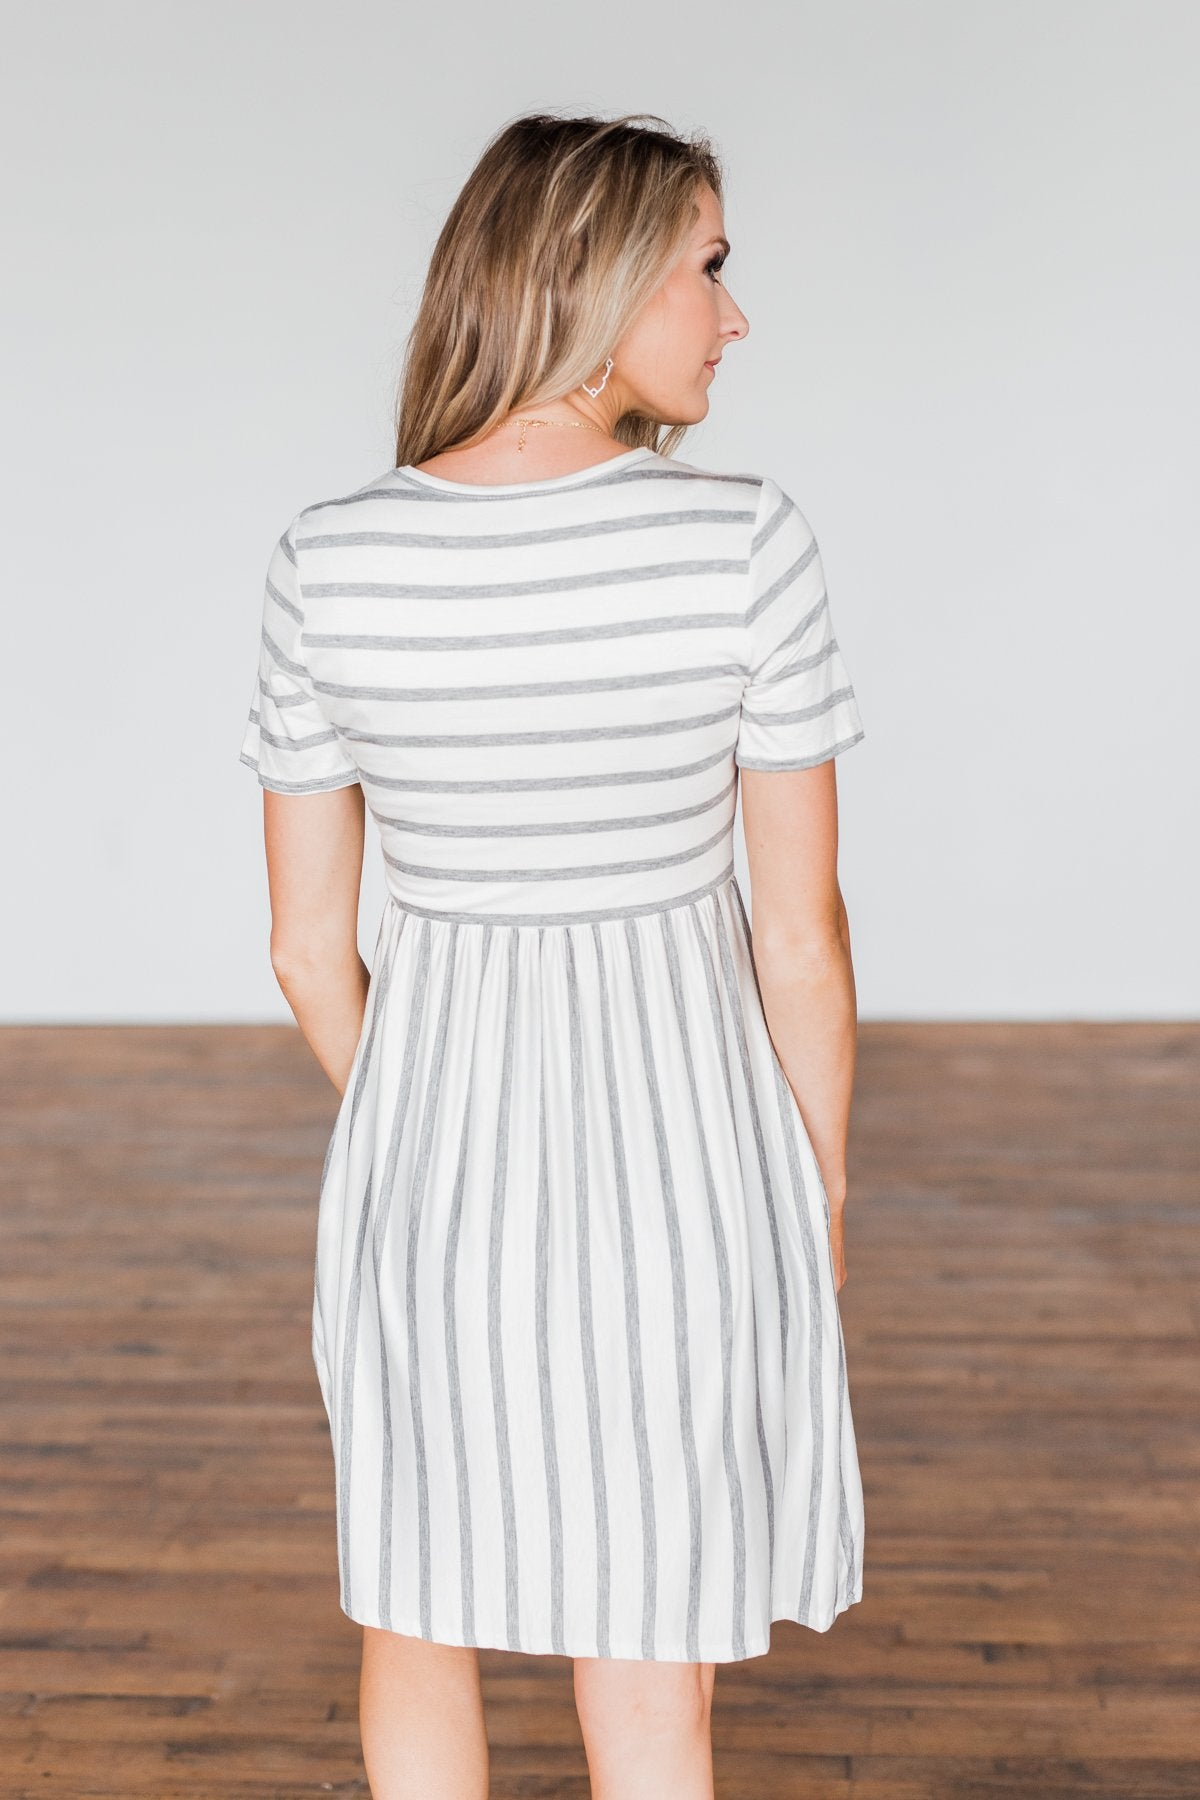 Wanted You To Know Striped Dress- Ivory & Grey